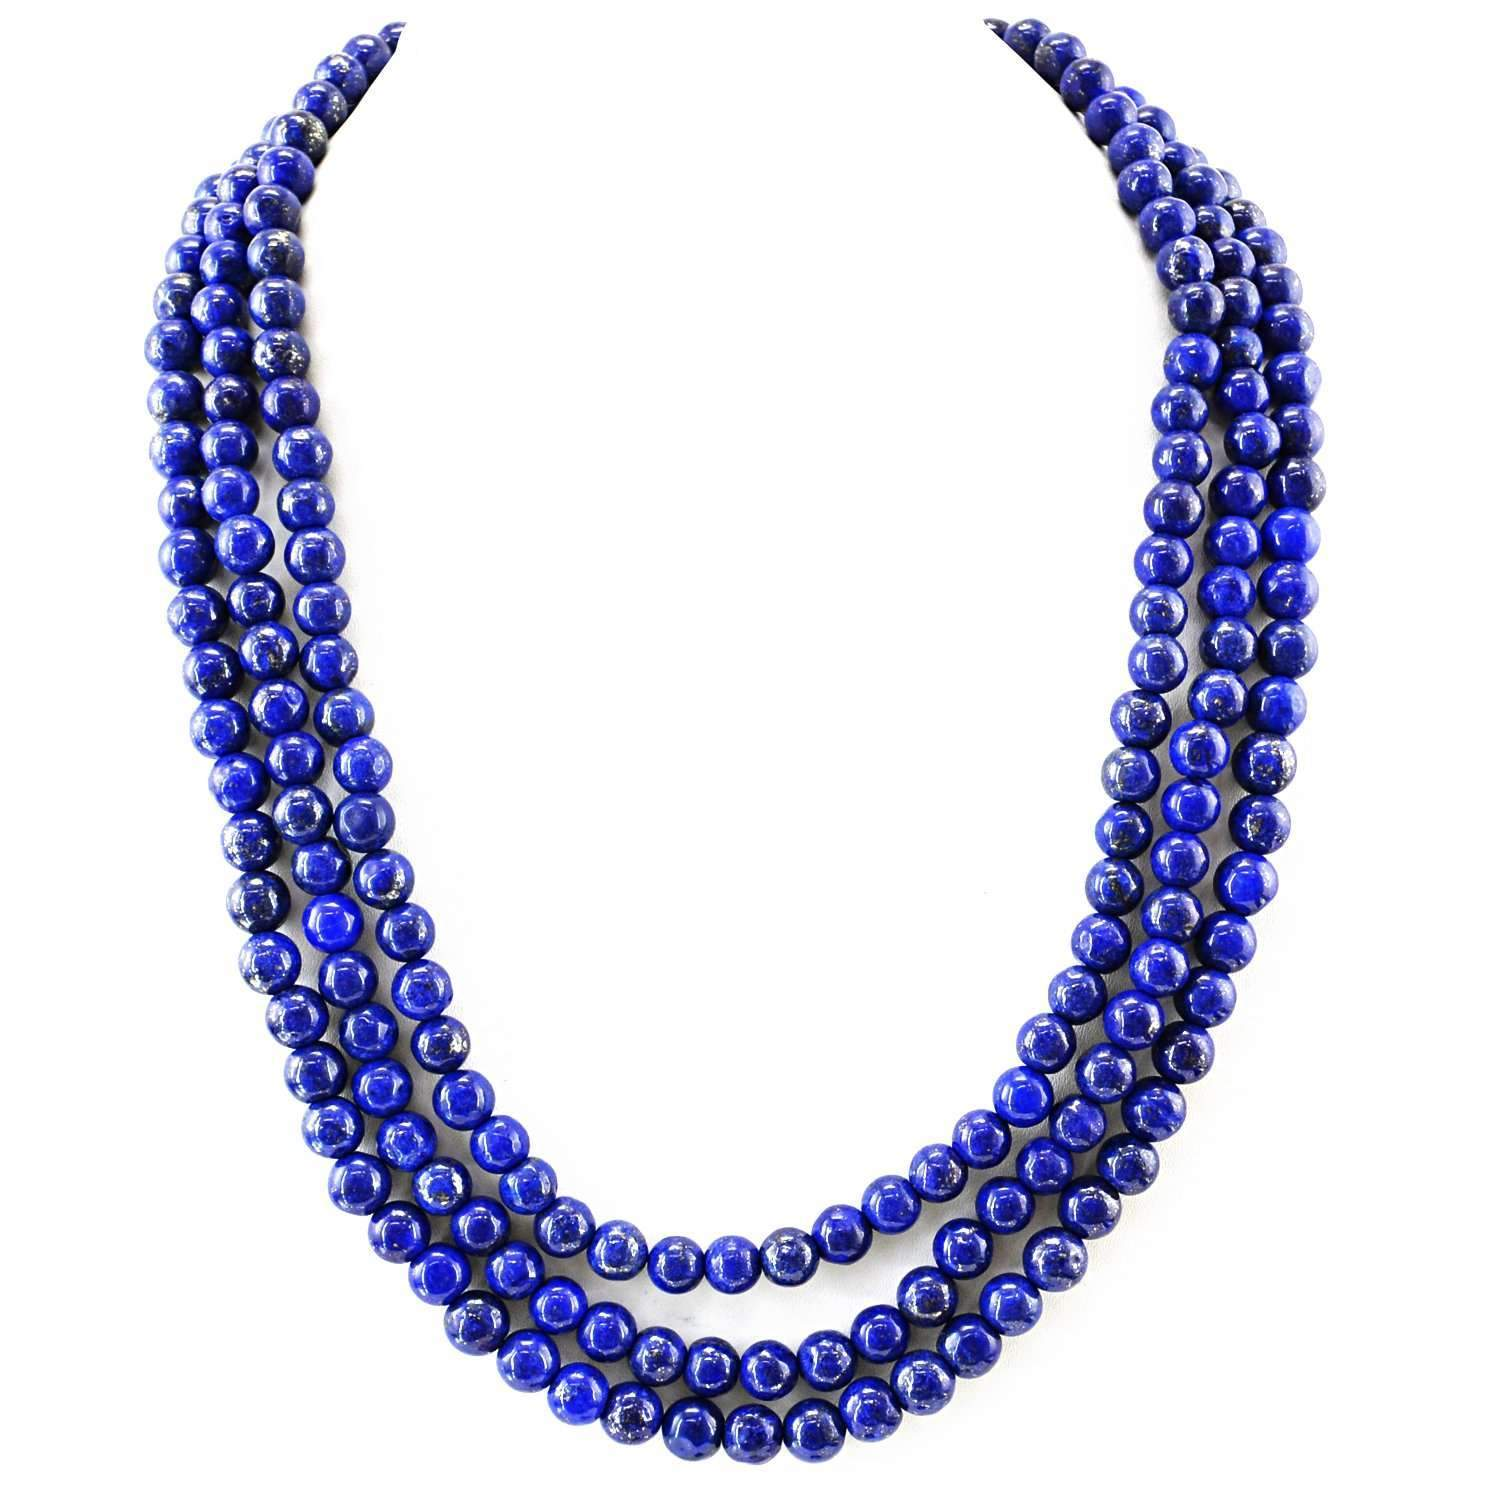 gemsmore:3 Strand Blue Lapis Lazuli Necklace Natural Round Shape Beads